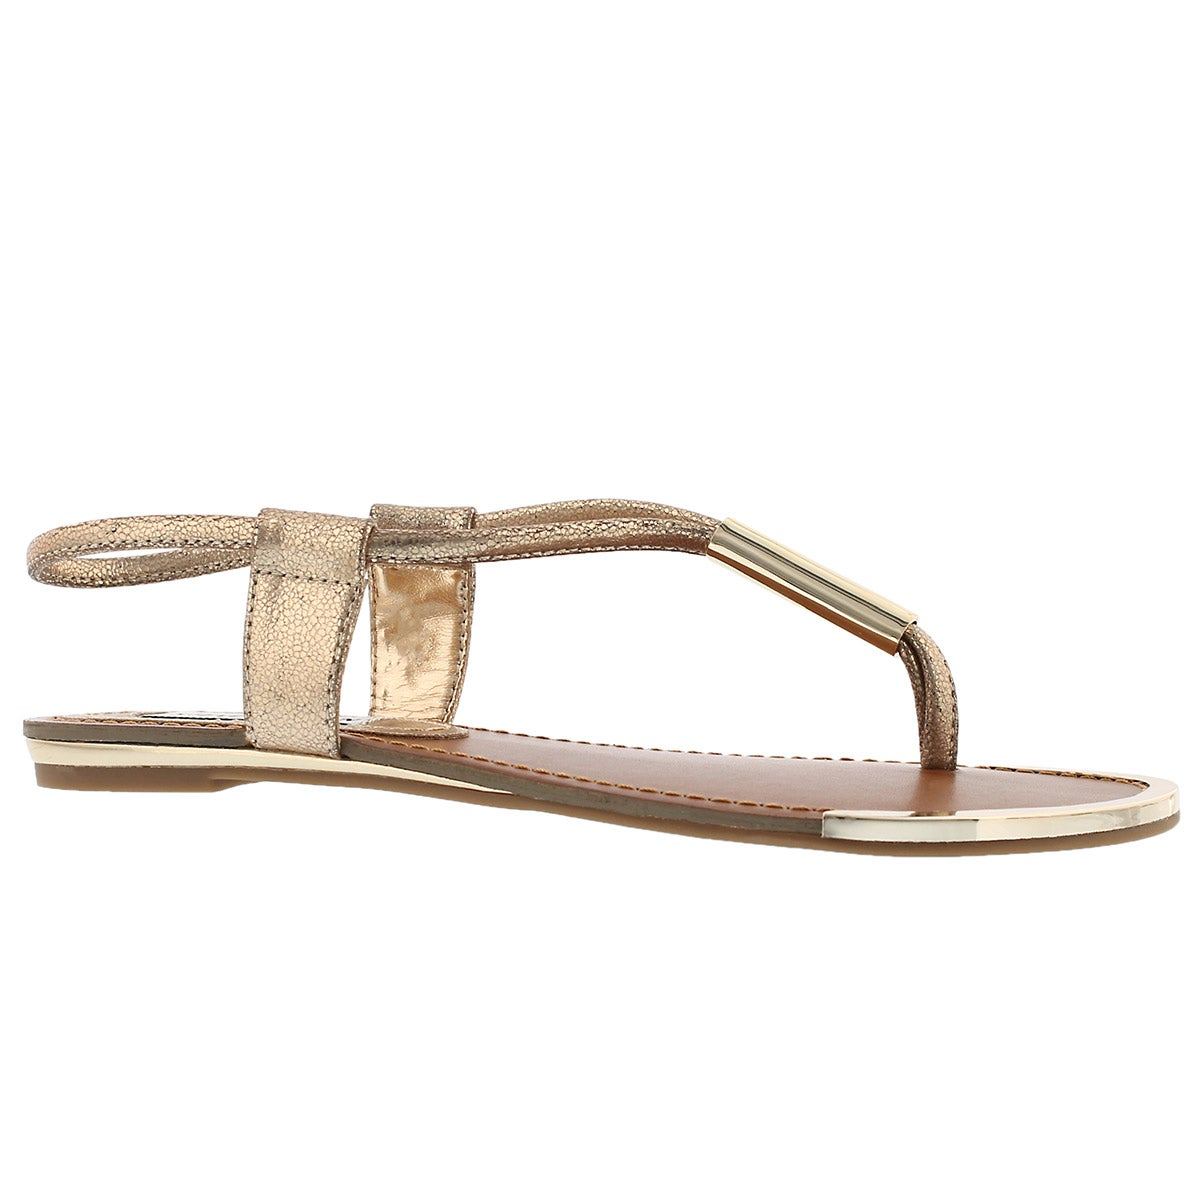 Women's HOLLAND gold t-strap thong sandals